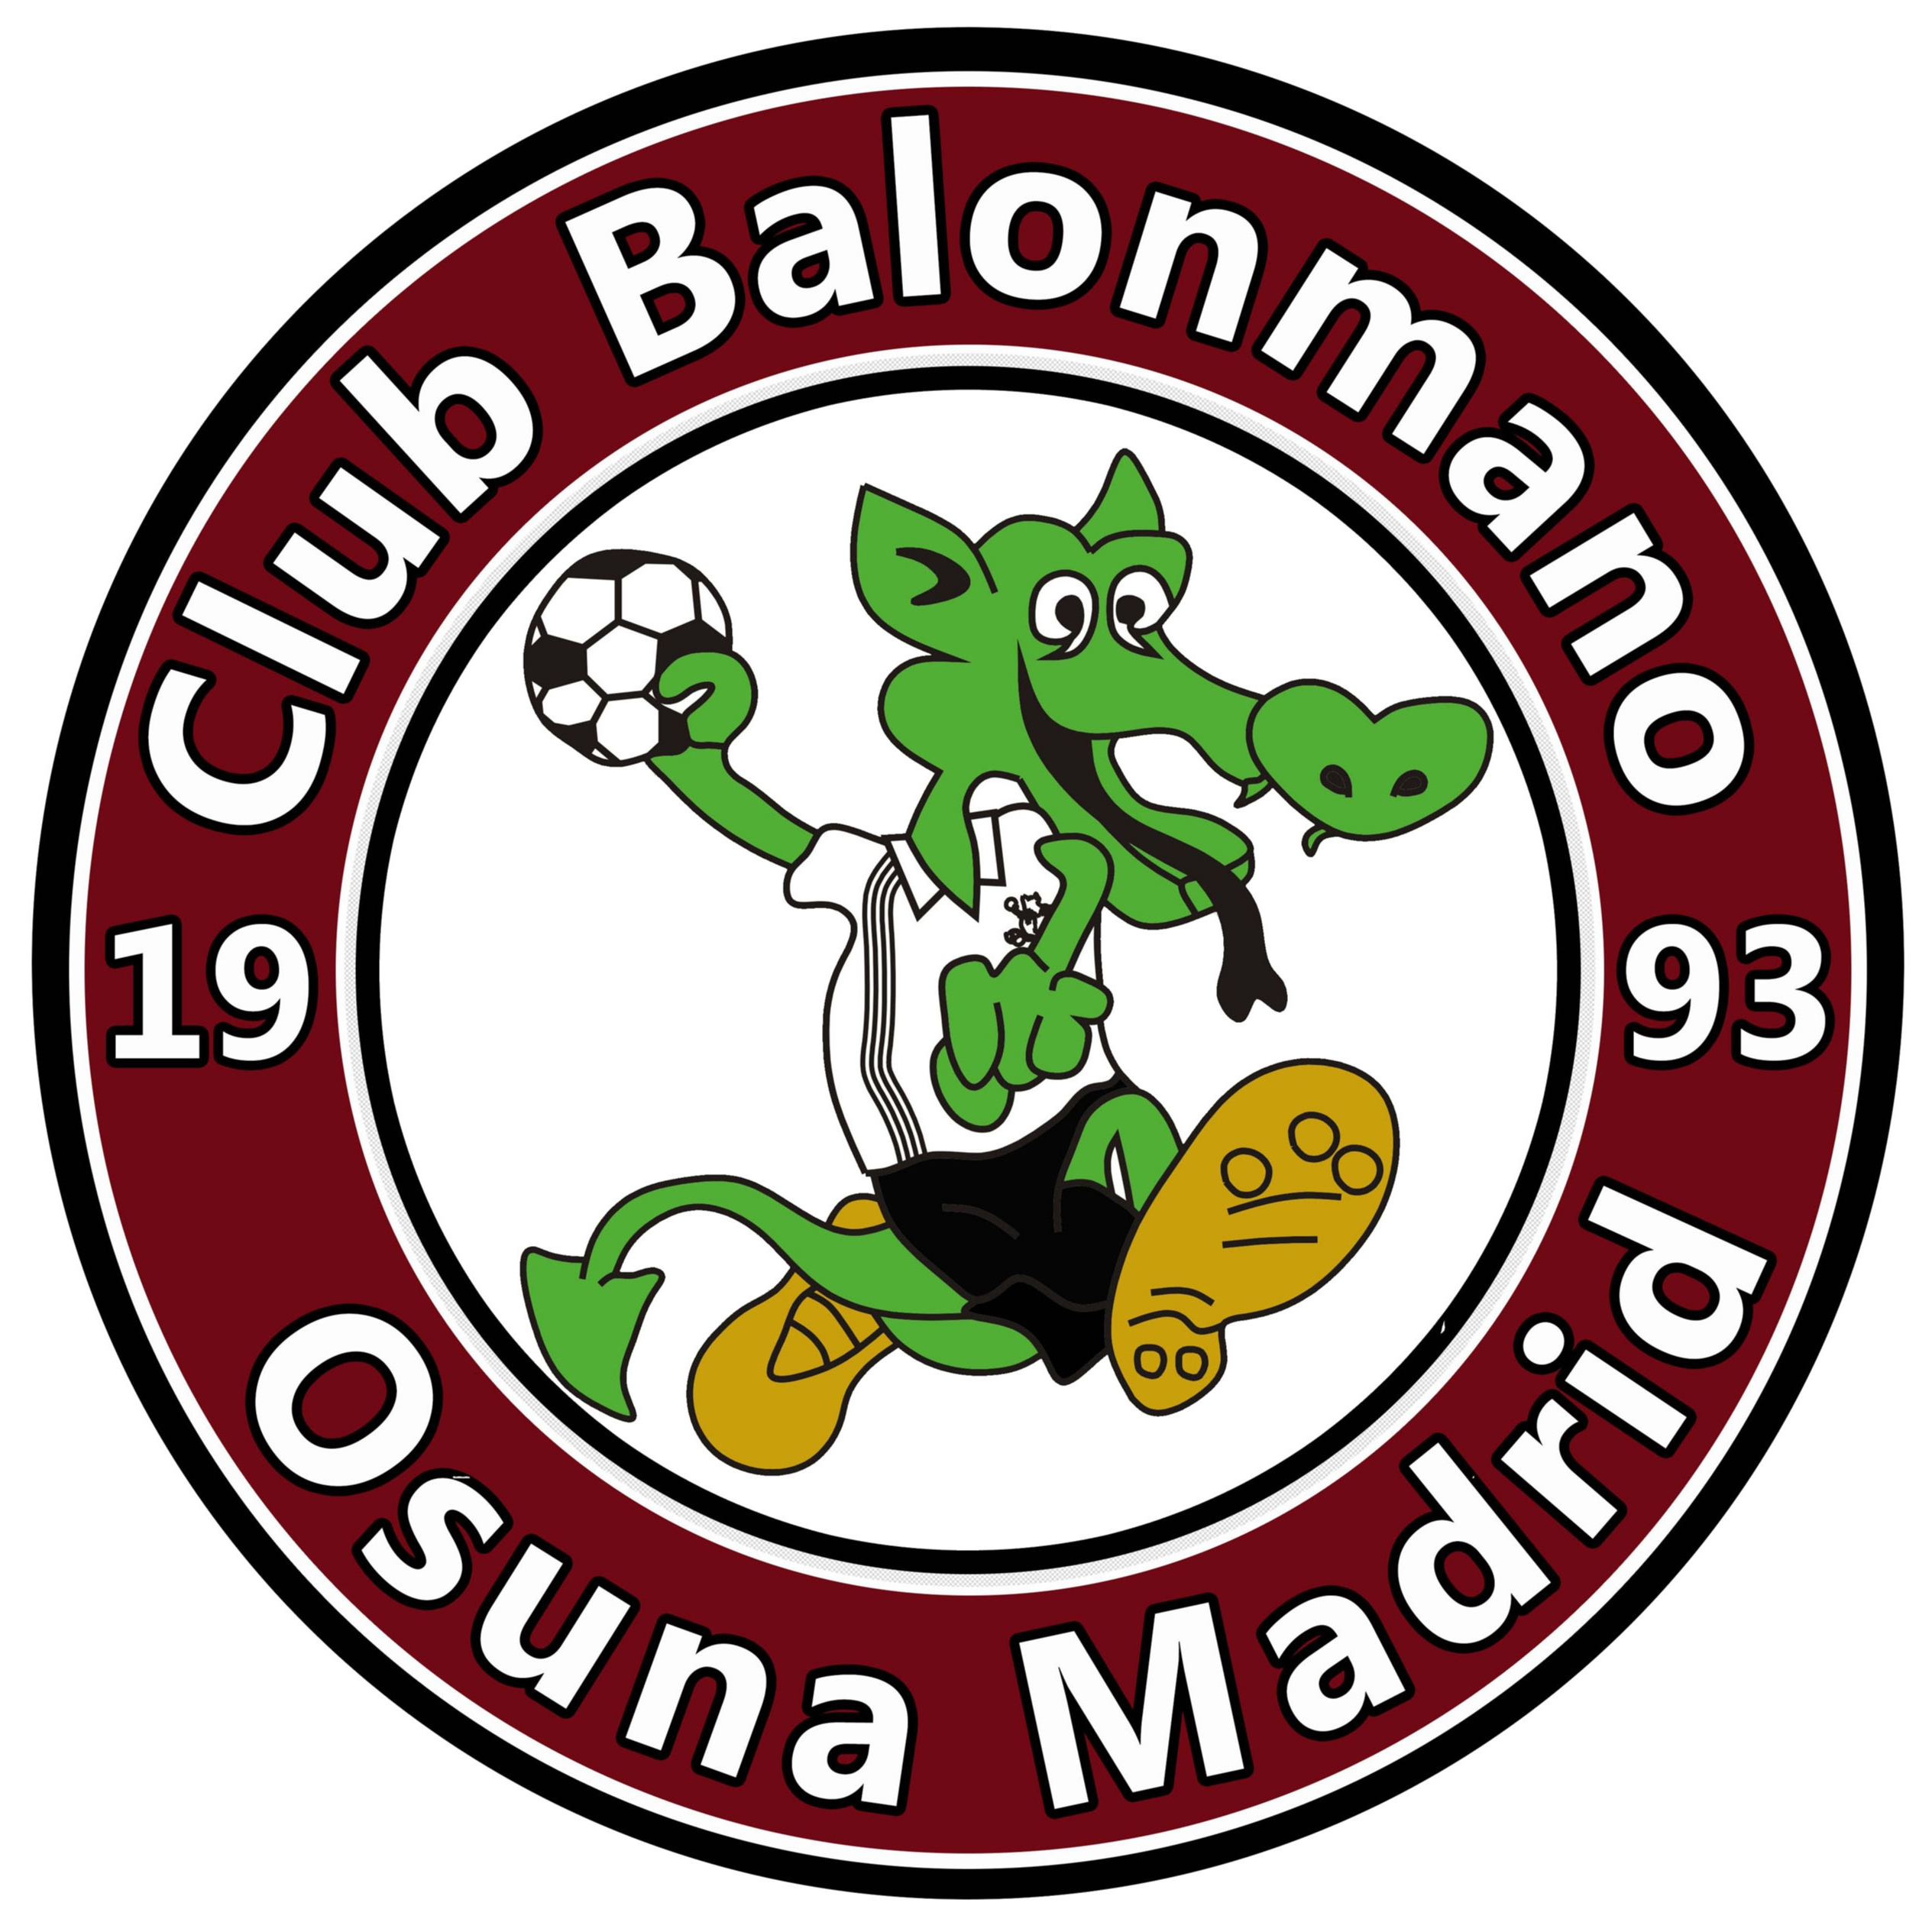 CLUB BALONMANO OSUNA MADRID